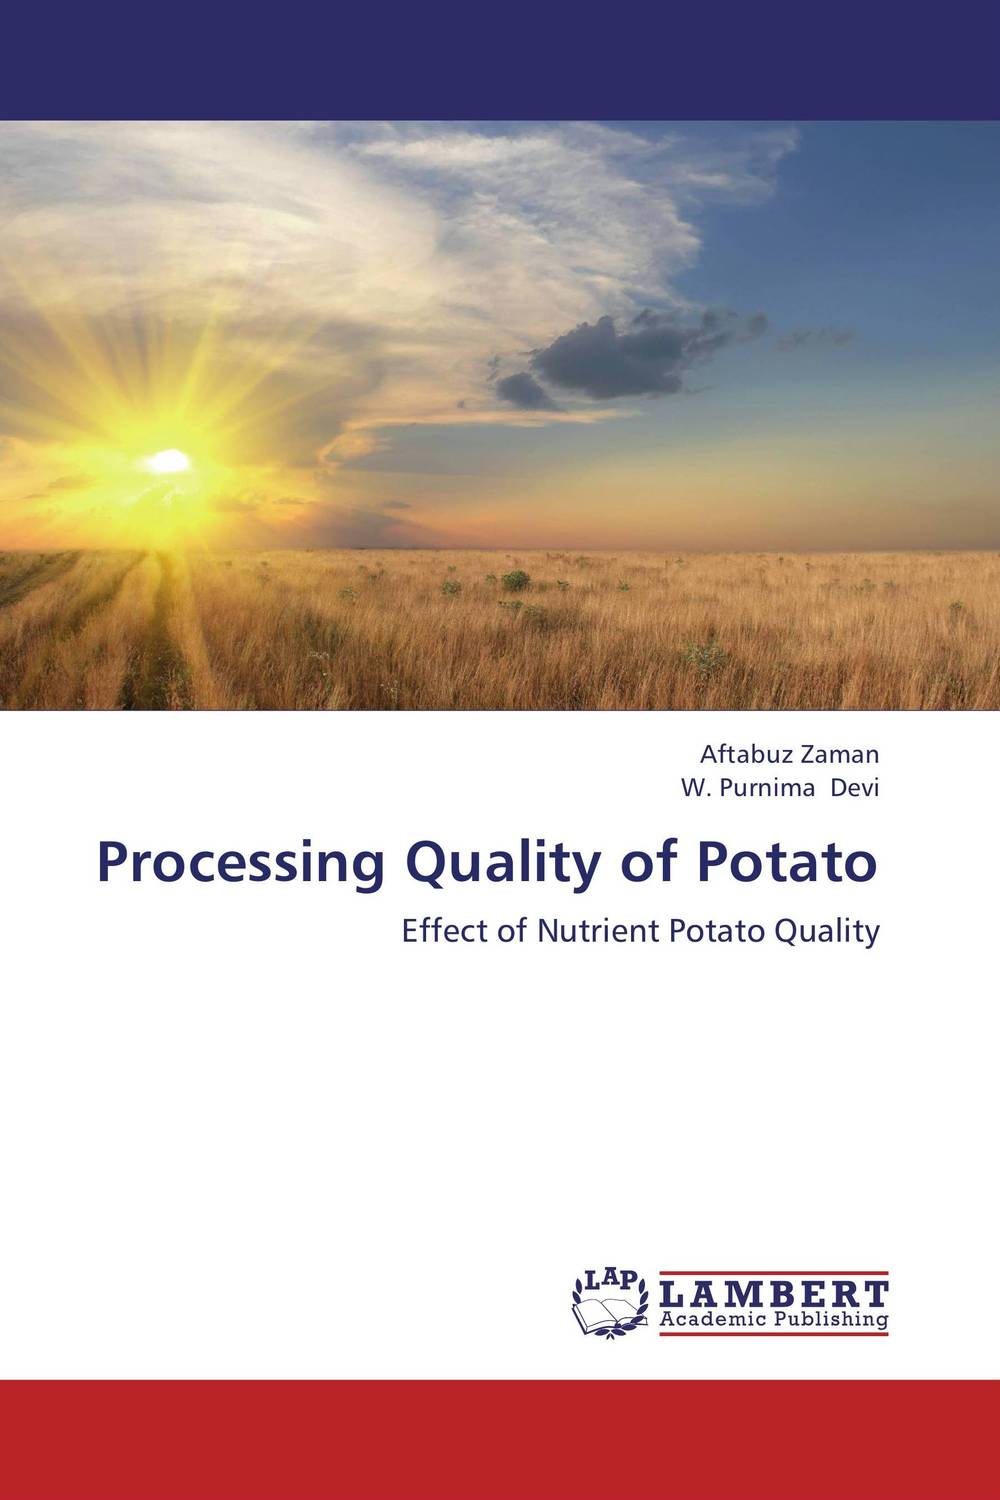 Processing Quality of Potato dr david m mburu prof mary w ndungu and prof ahmed hassanali virulence and repellency of fungi on macrotermes and mediating signals